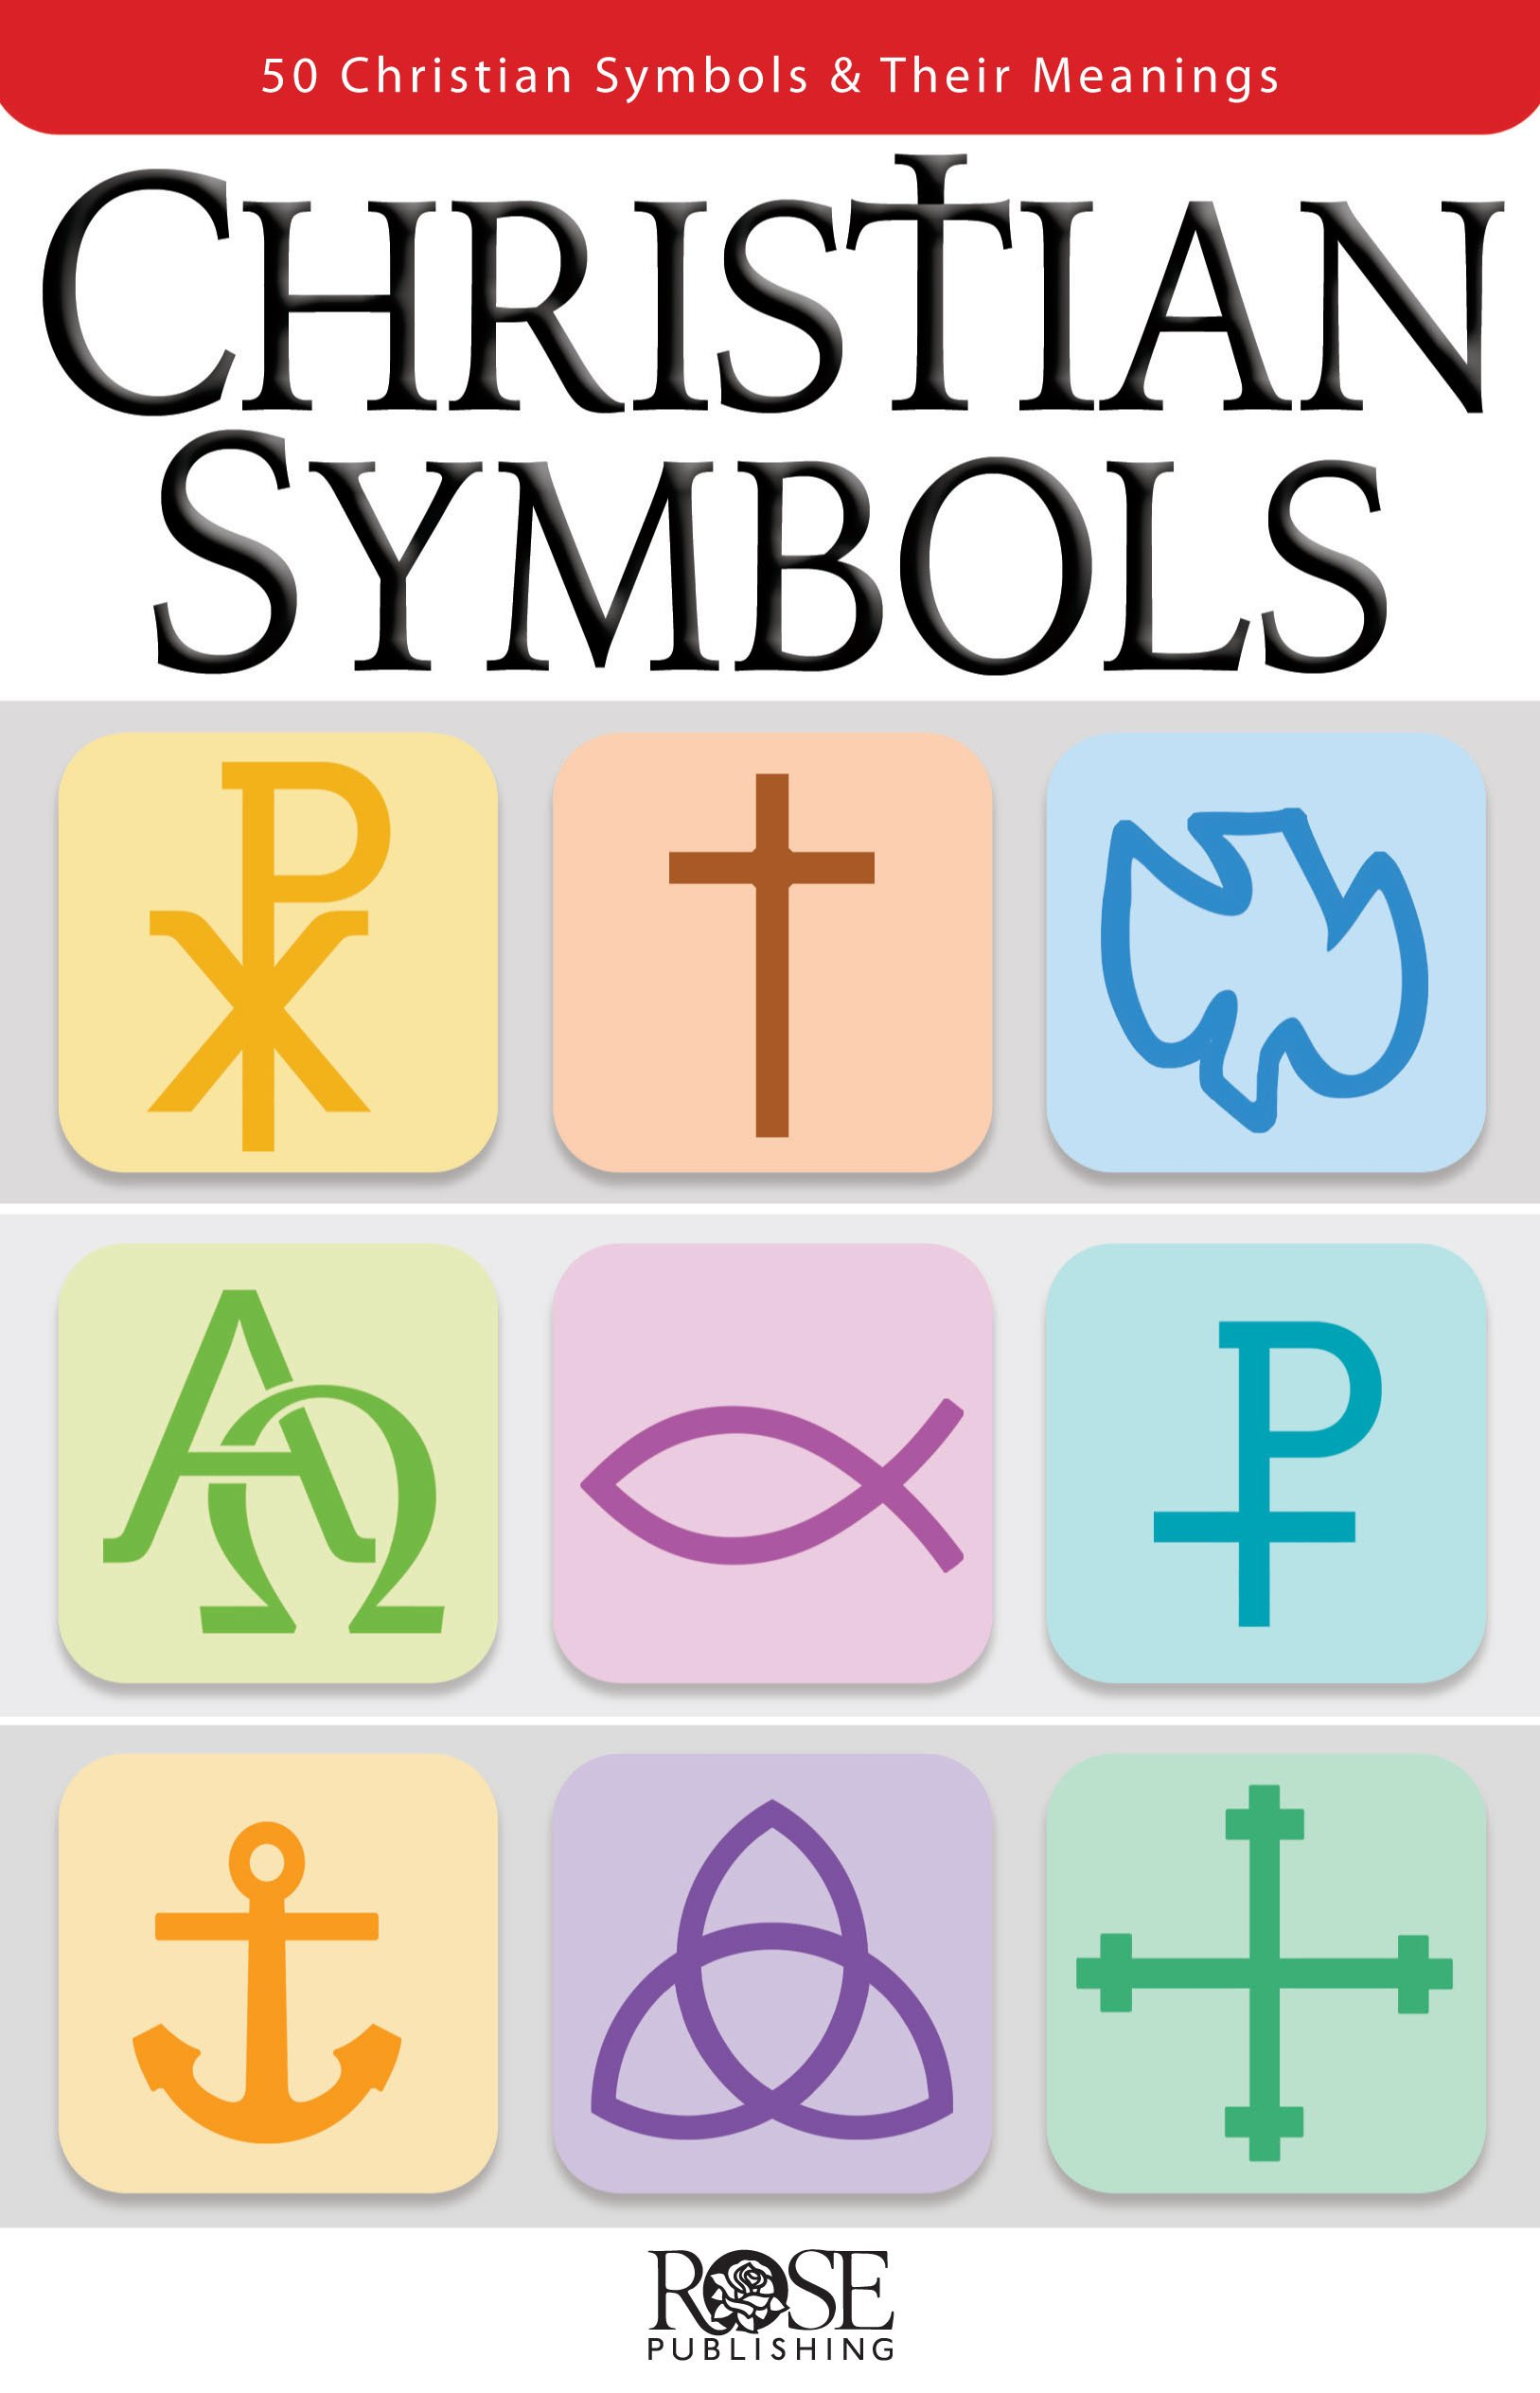 Christian symbols pamphlet rose publishing 9781628622942 amazon christian symbols pamphlet rose publishing 9781628622942 amazon books biocorpaavc Image collections